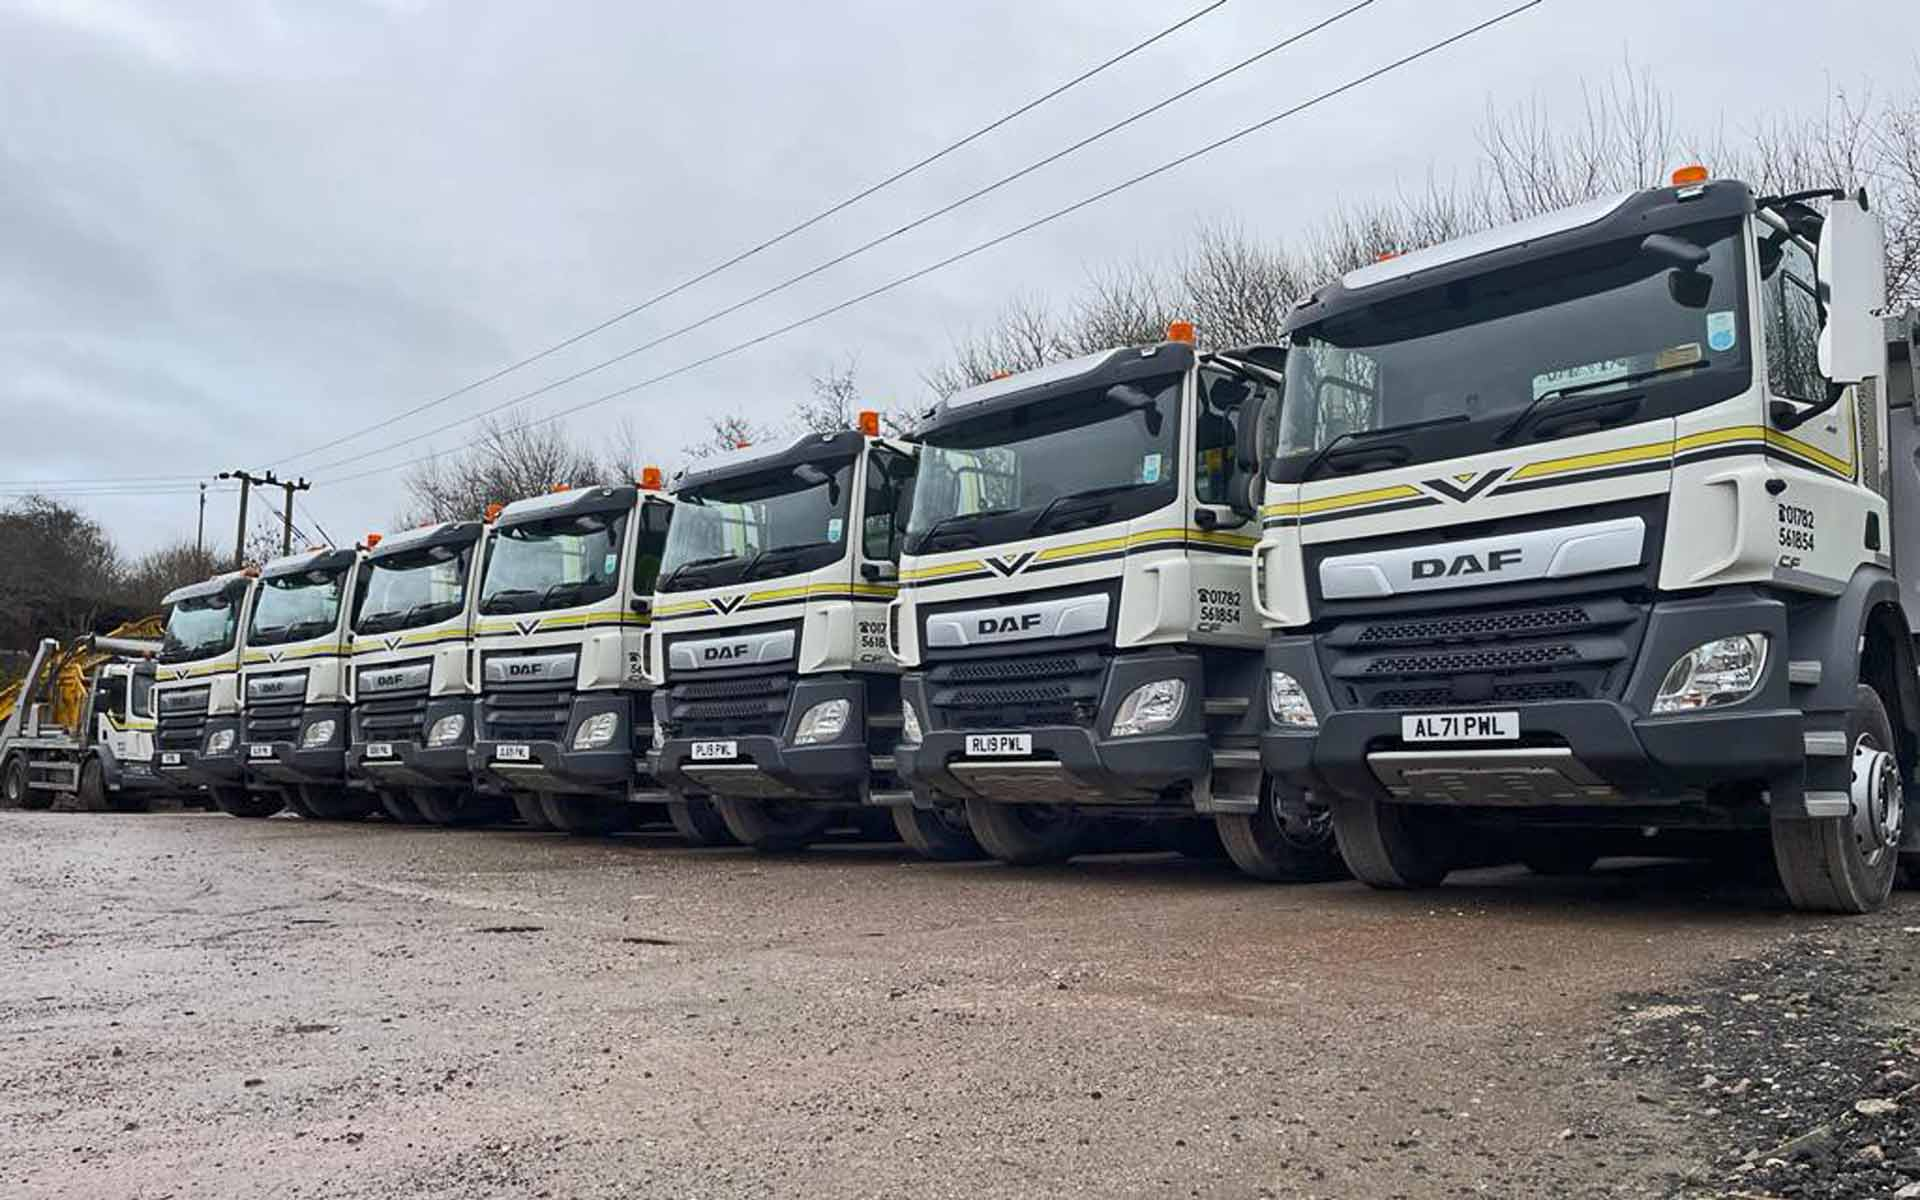 Potteries Waste Hire Newcastle under Lyme and Stoke on Trent